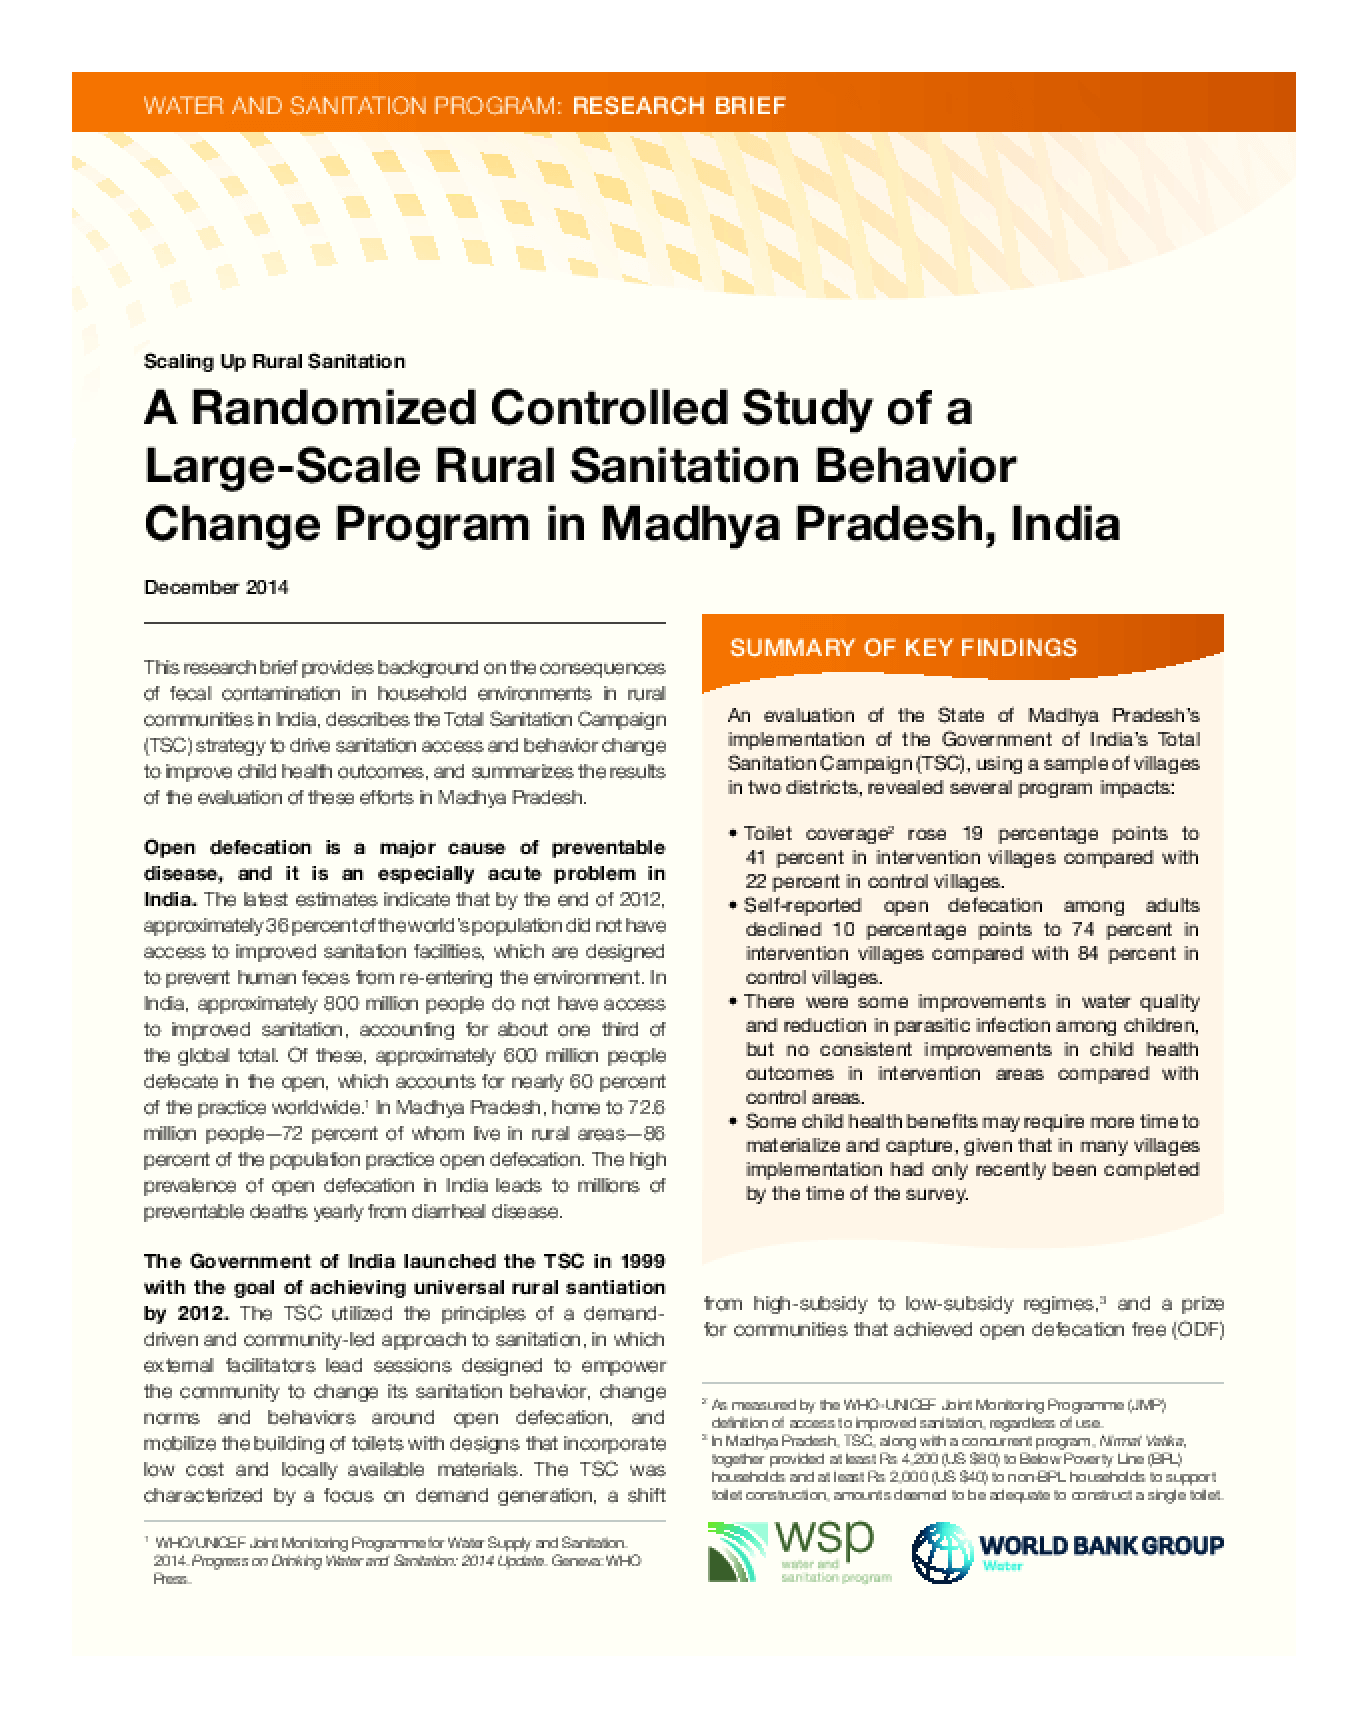 A Randomized Controlled Study of a Large-Scale Rural Sanitation Behavior Change Program in Madhya Pradesh, India